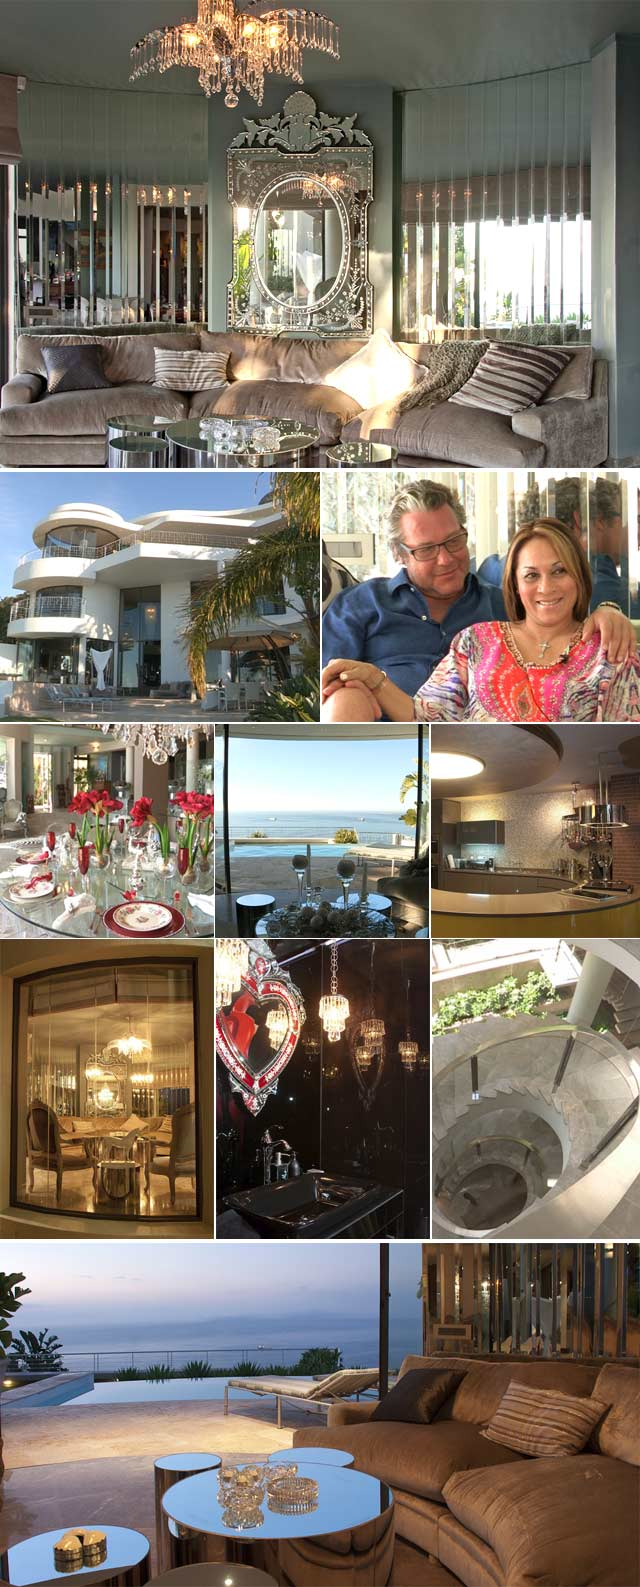 Top Billing features the glamorous home of Gloria Arendz